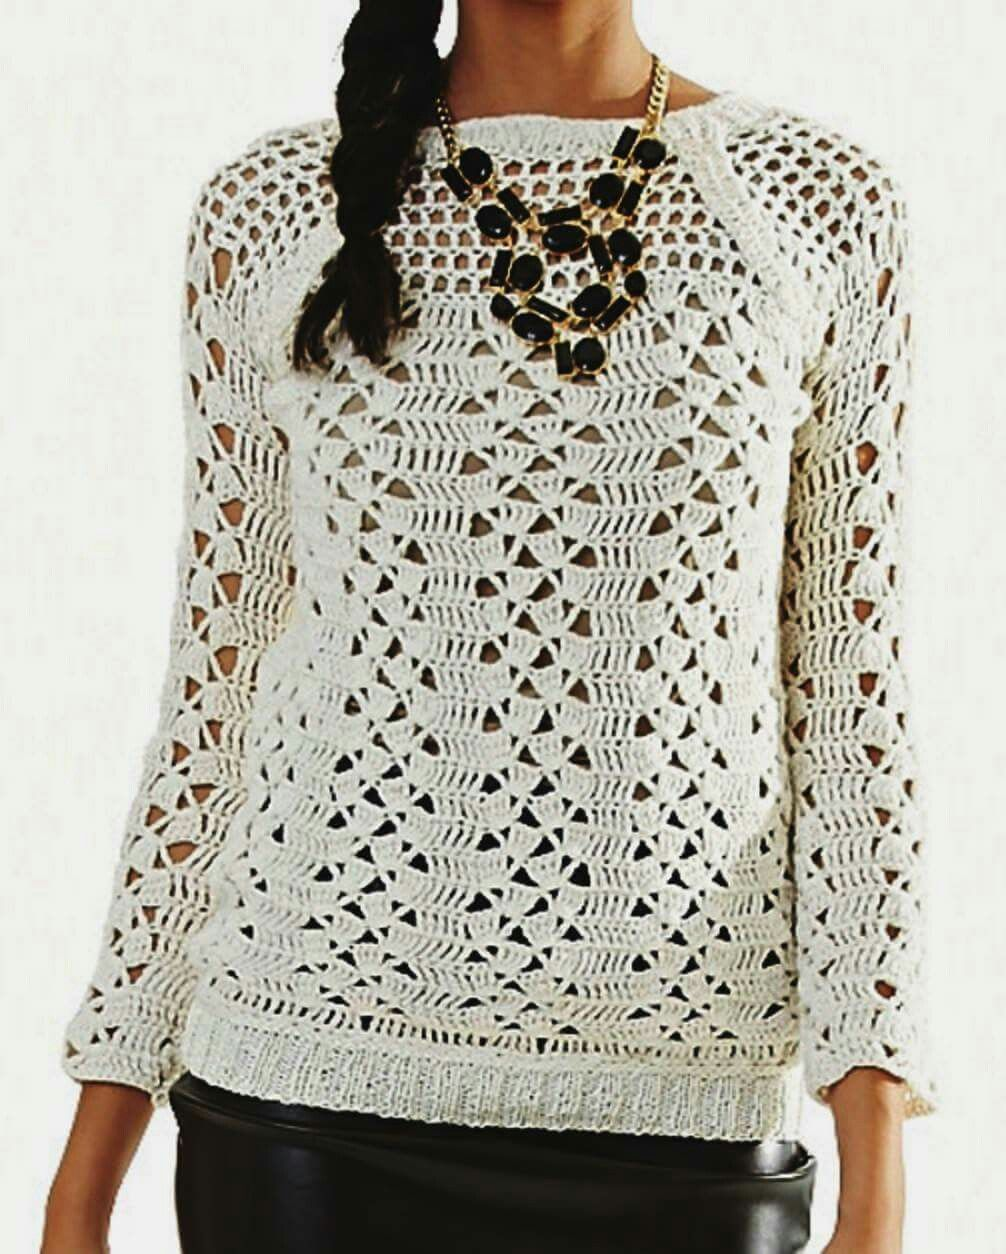 Knitted Blouse Free Pattern